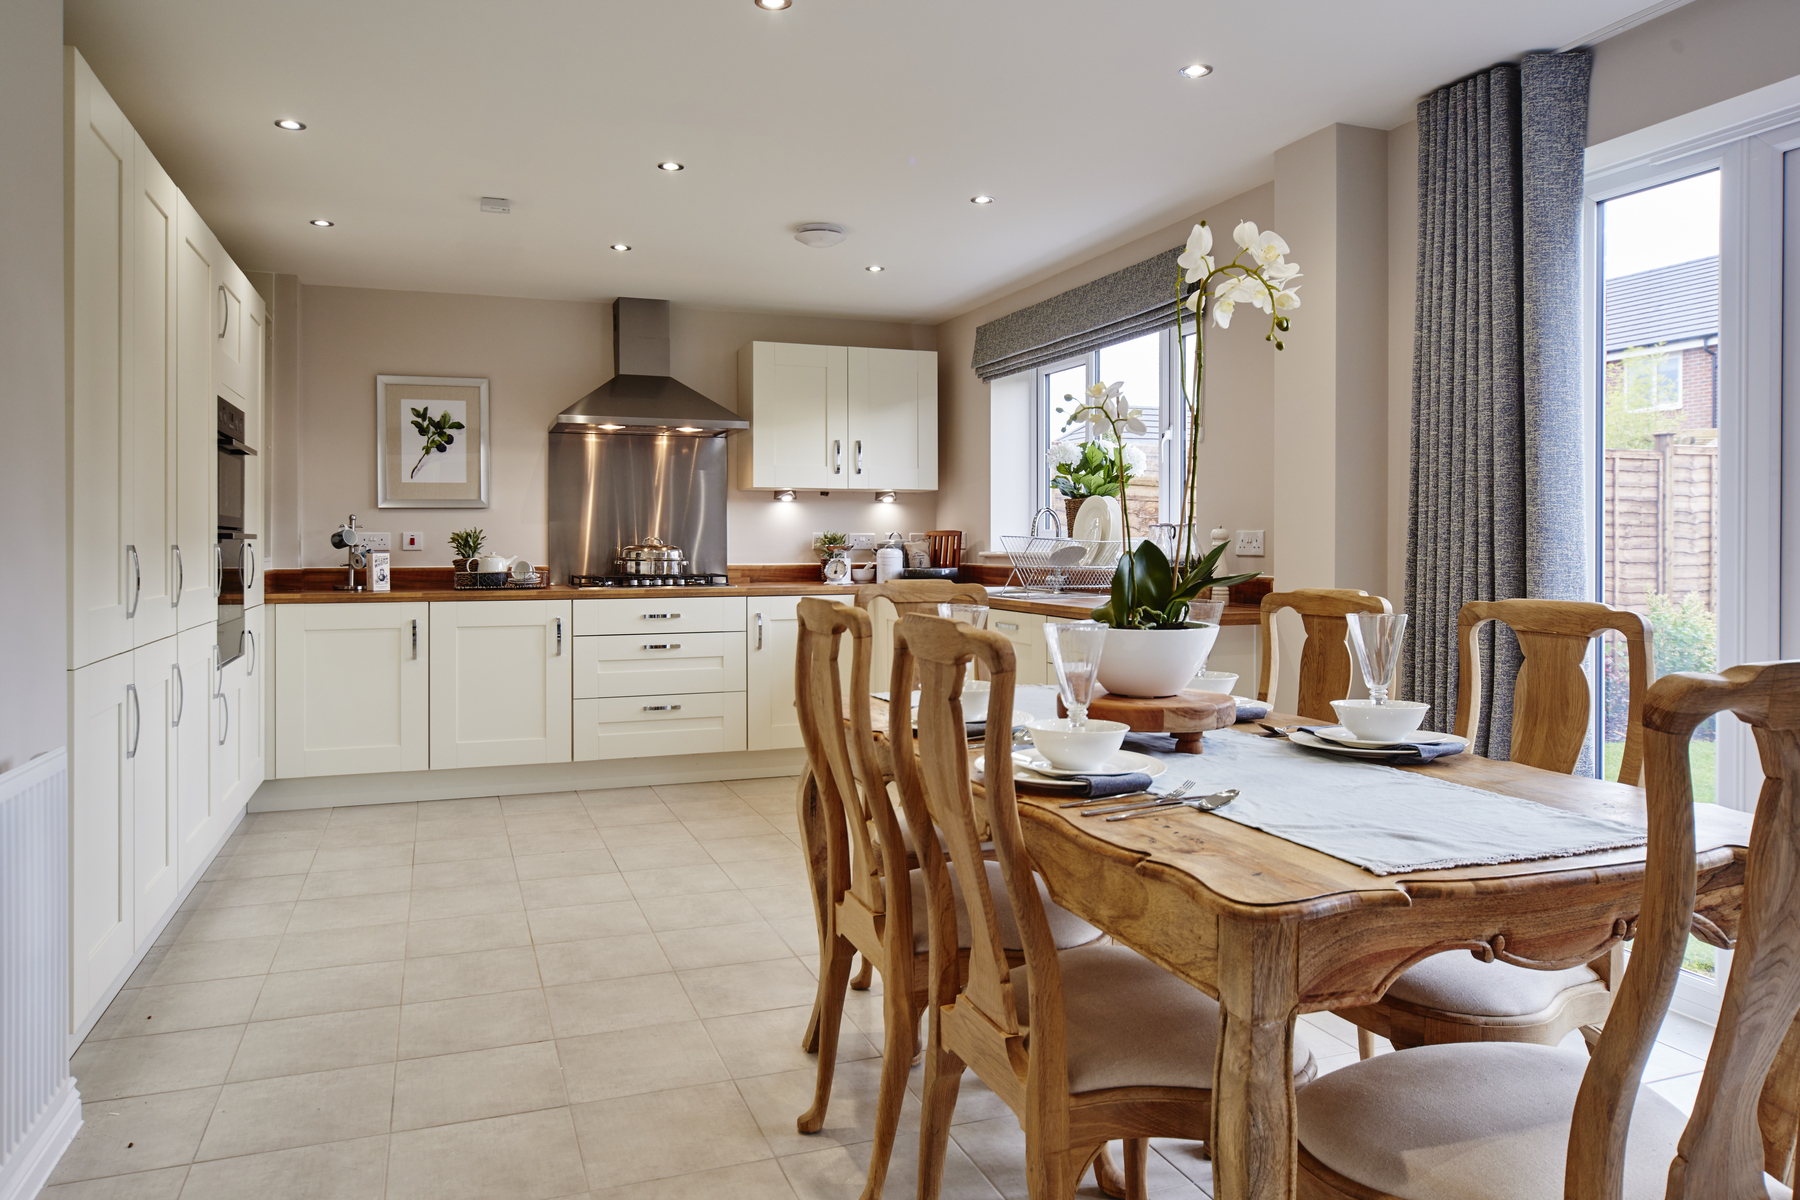 TWM_BurlingtonFields_Shifnal_Haddenham_Showhome_0001